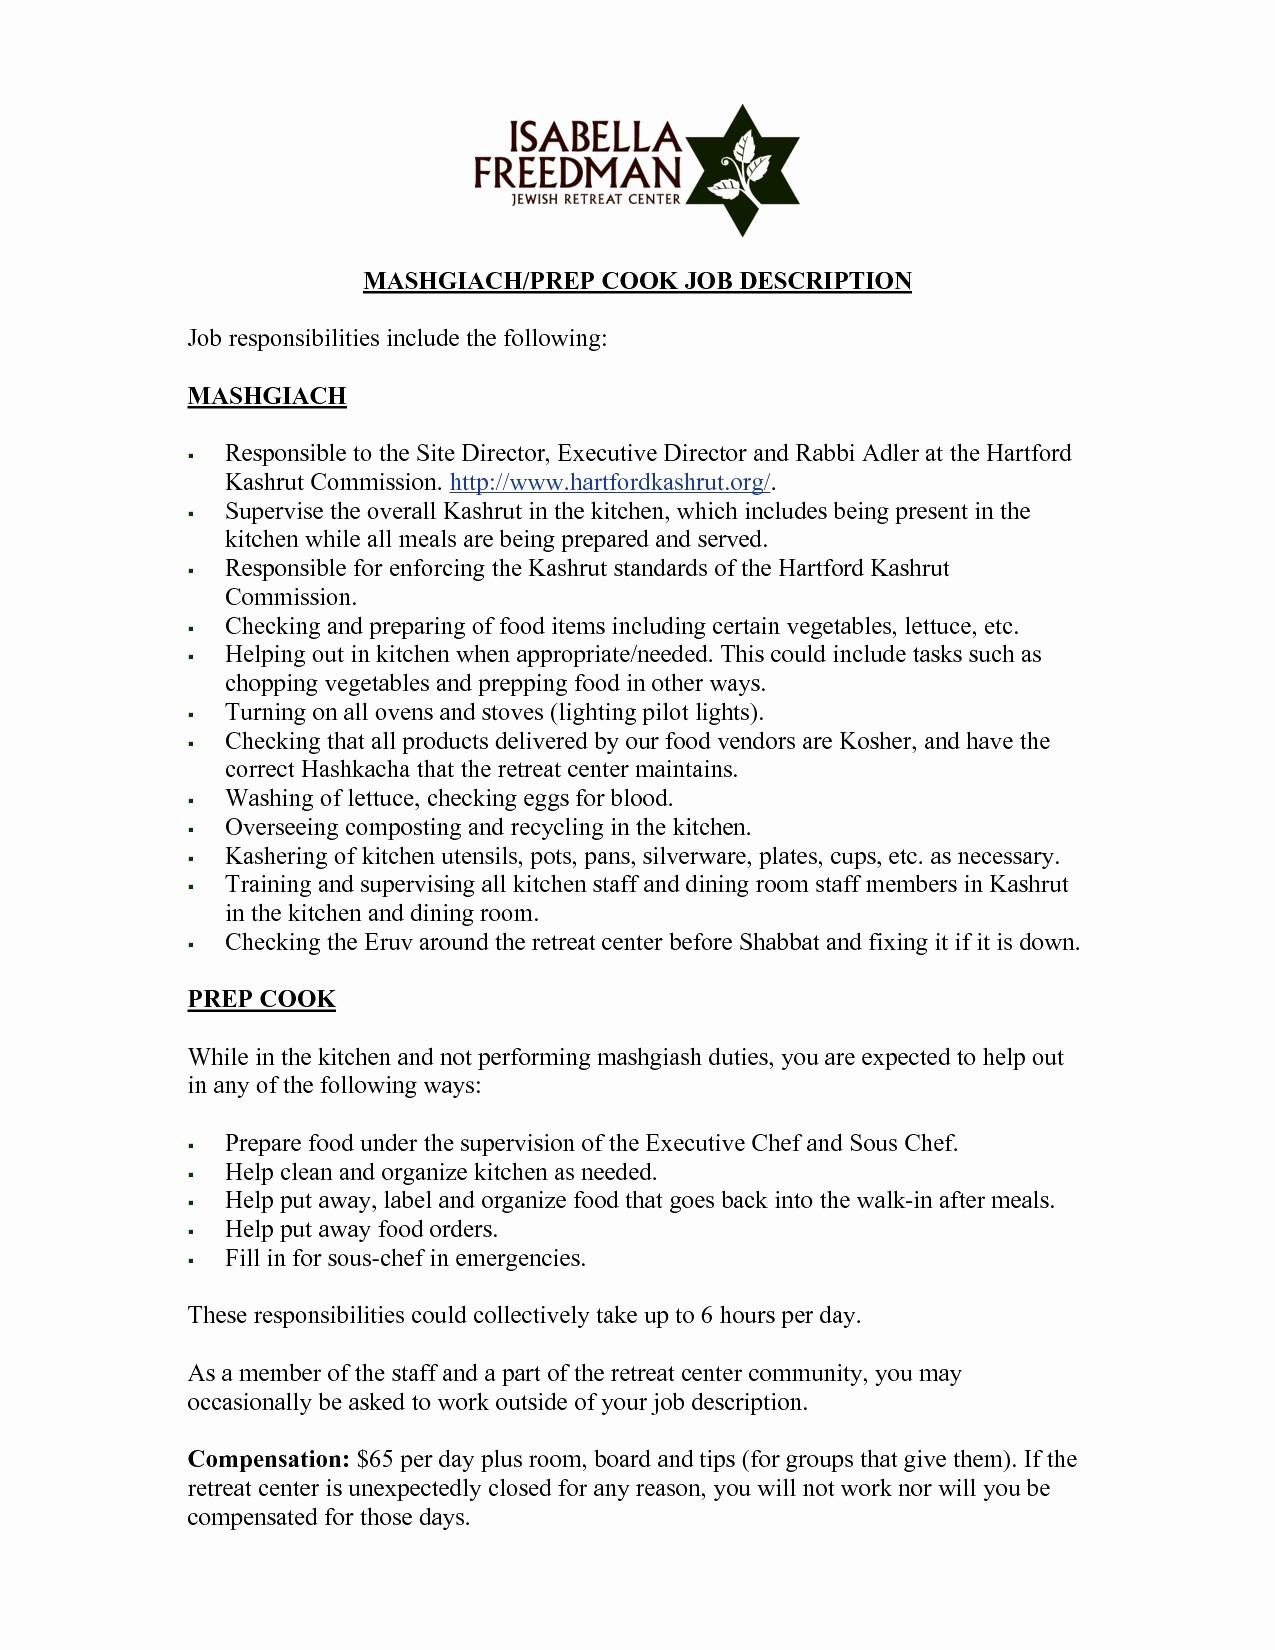 Executive Cover Letter Template - Executive assistant Sample Resume Best Elegant Example Resume